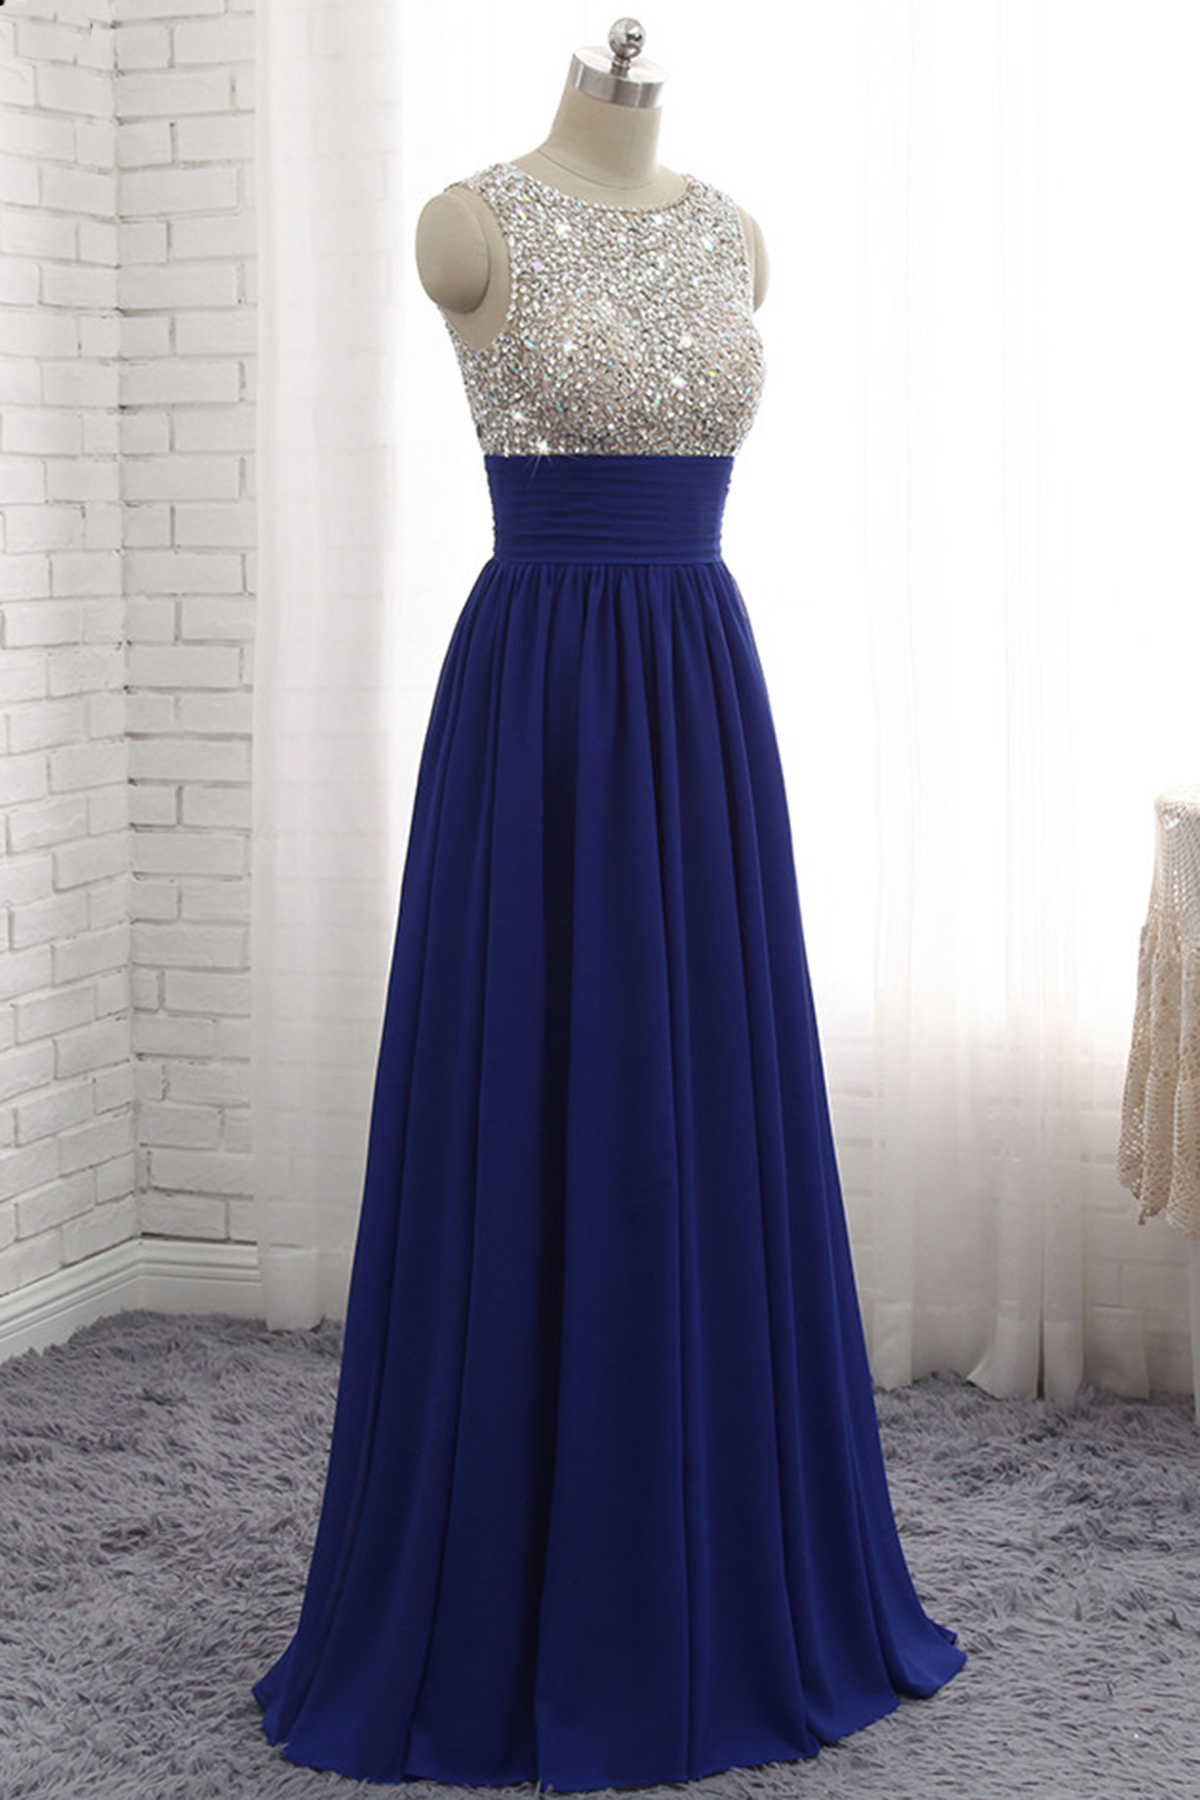 Cheap Prom Dresses By Sweetheartdress Royal Blue Chiffon Sequined Long A Line Prom Dress Bridesmaid Dress